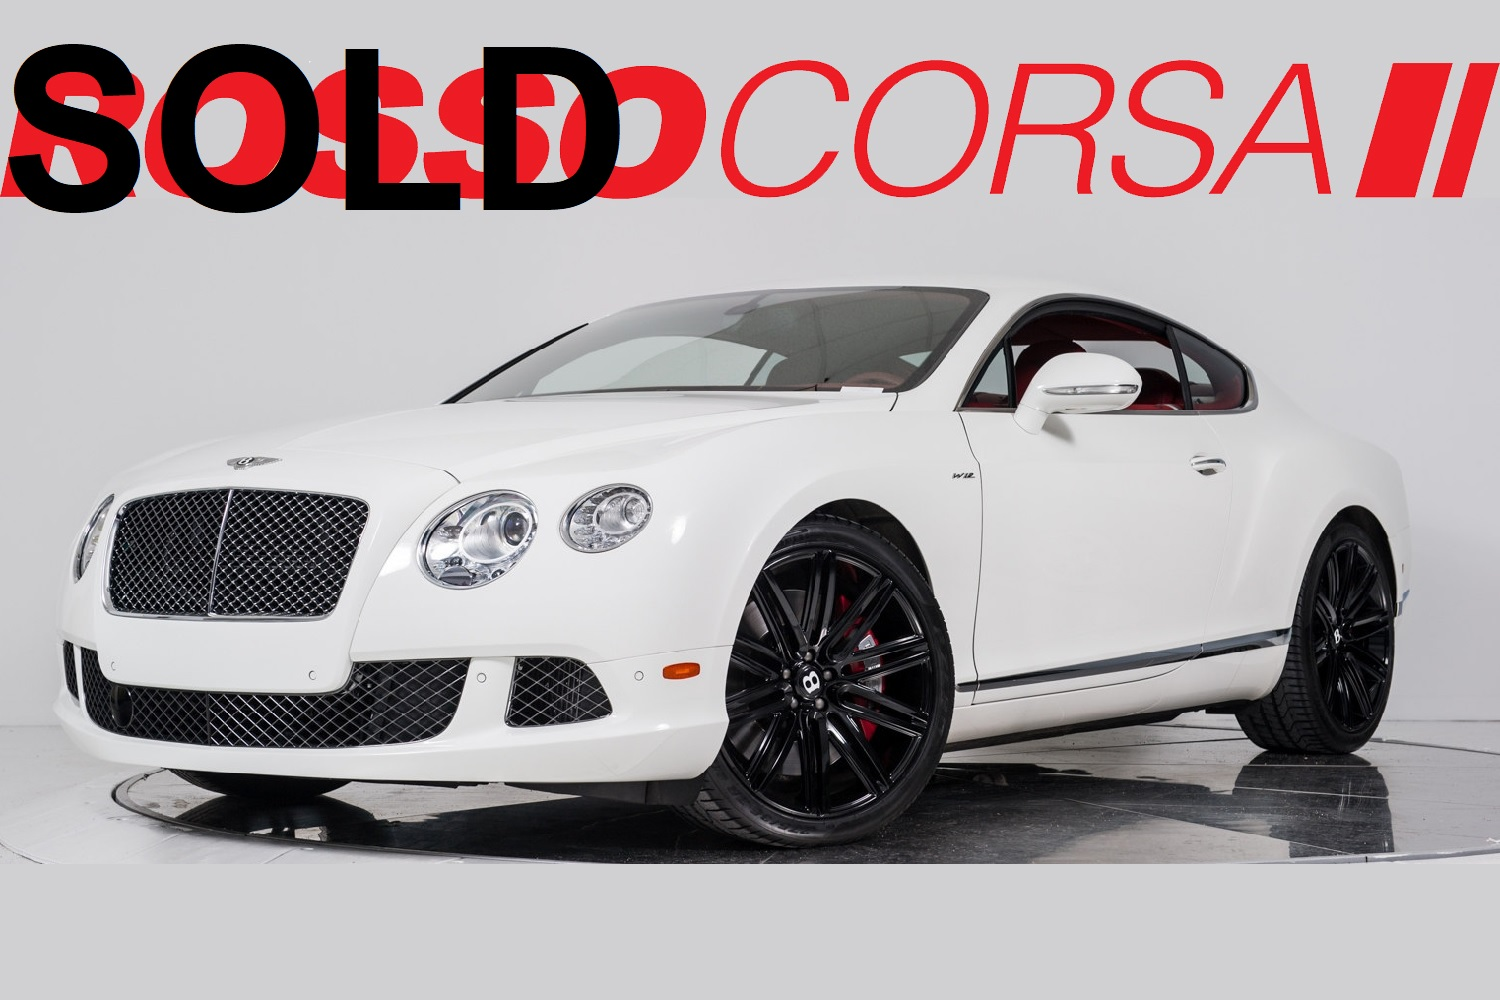 2013 Bentley Continental GT Speed ($253K MSRP)